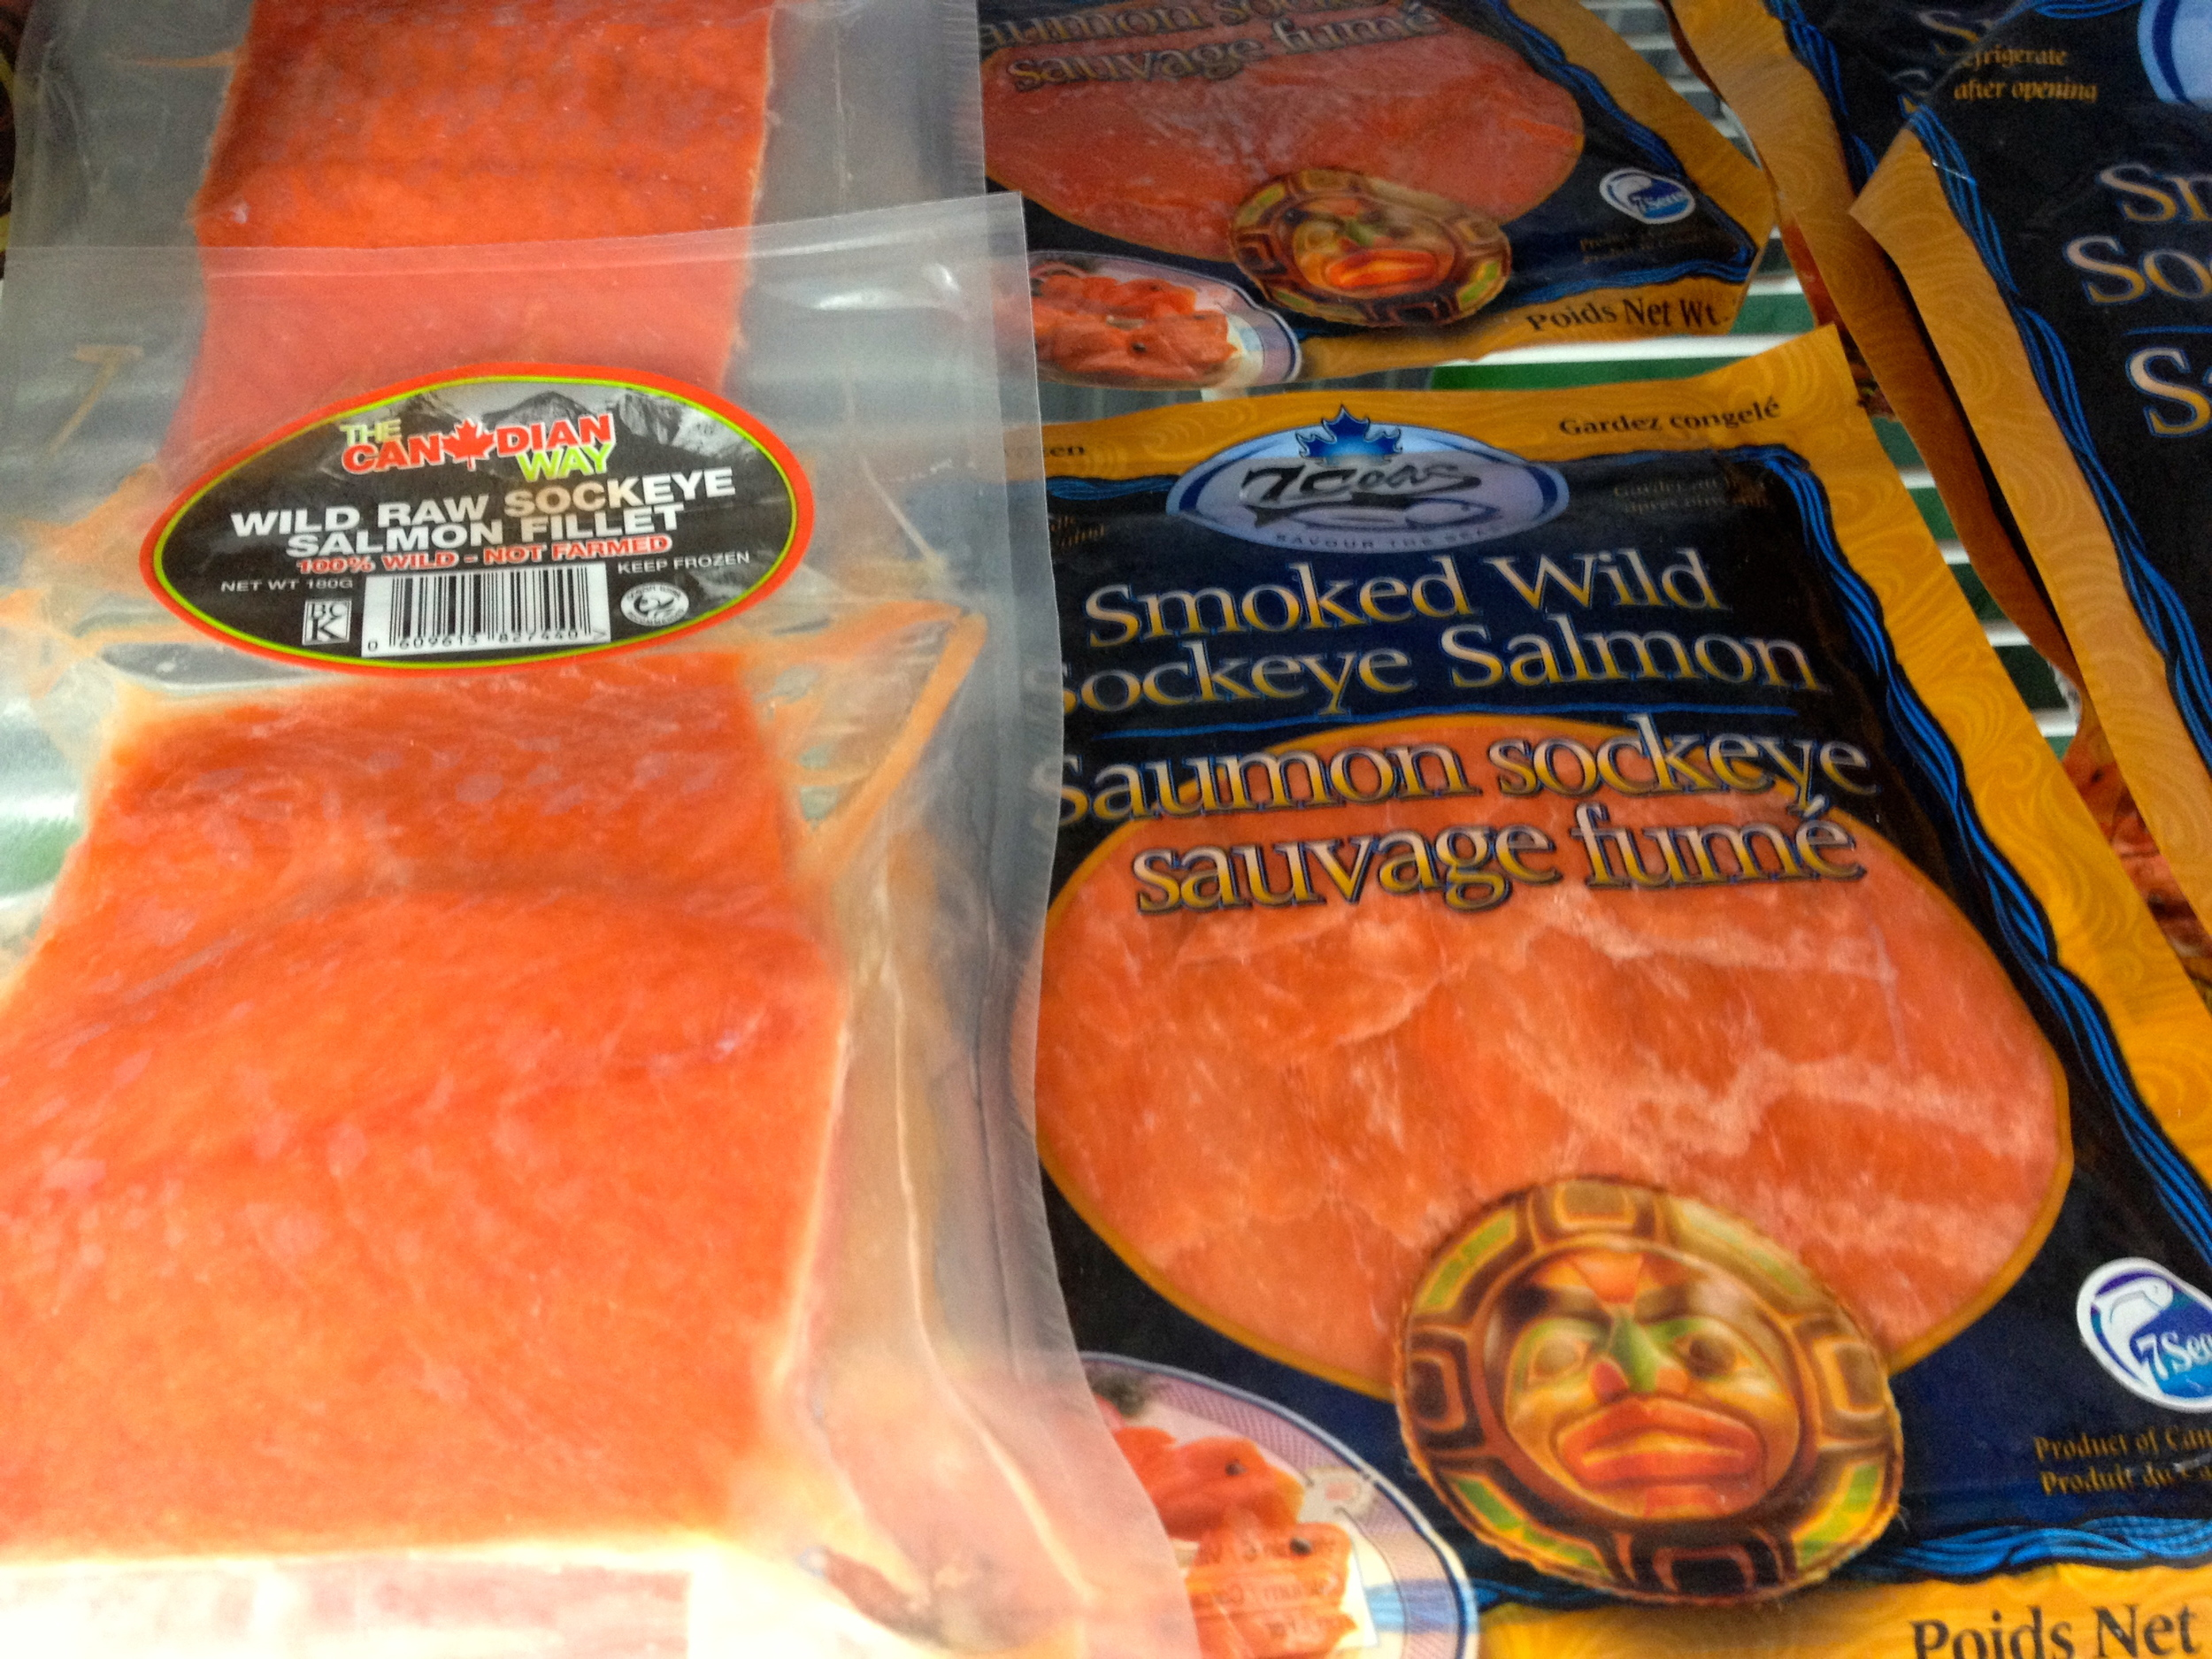 Raw and smoked wild salmon from The Canadian Way